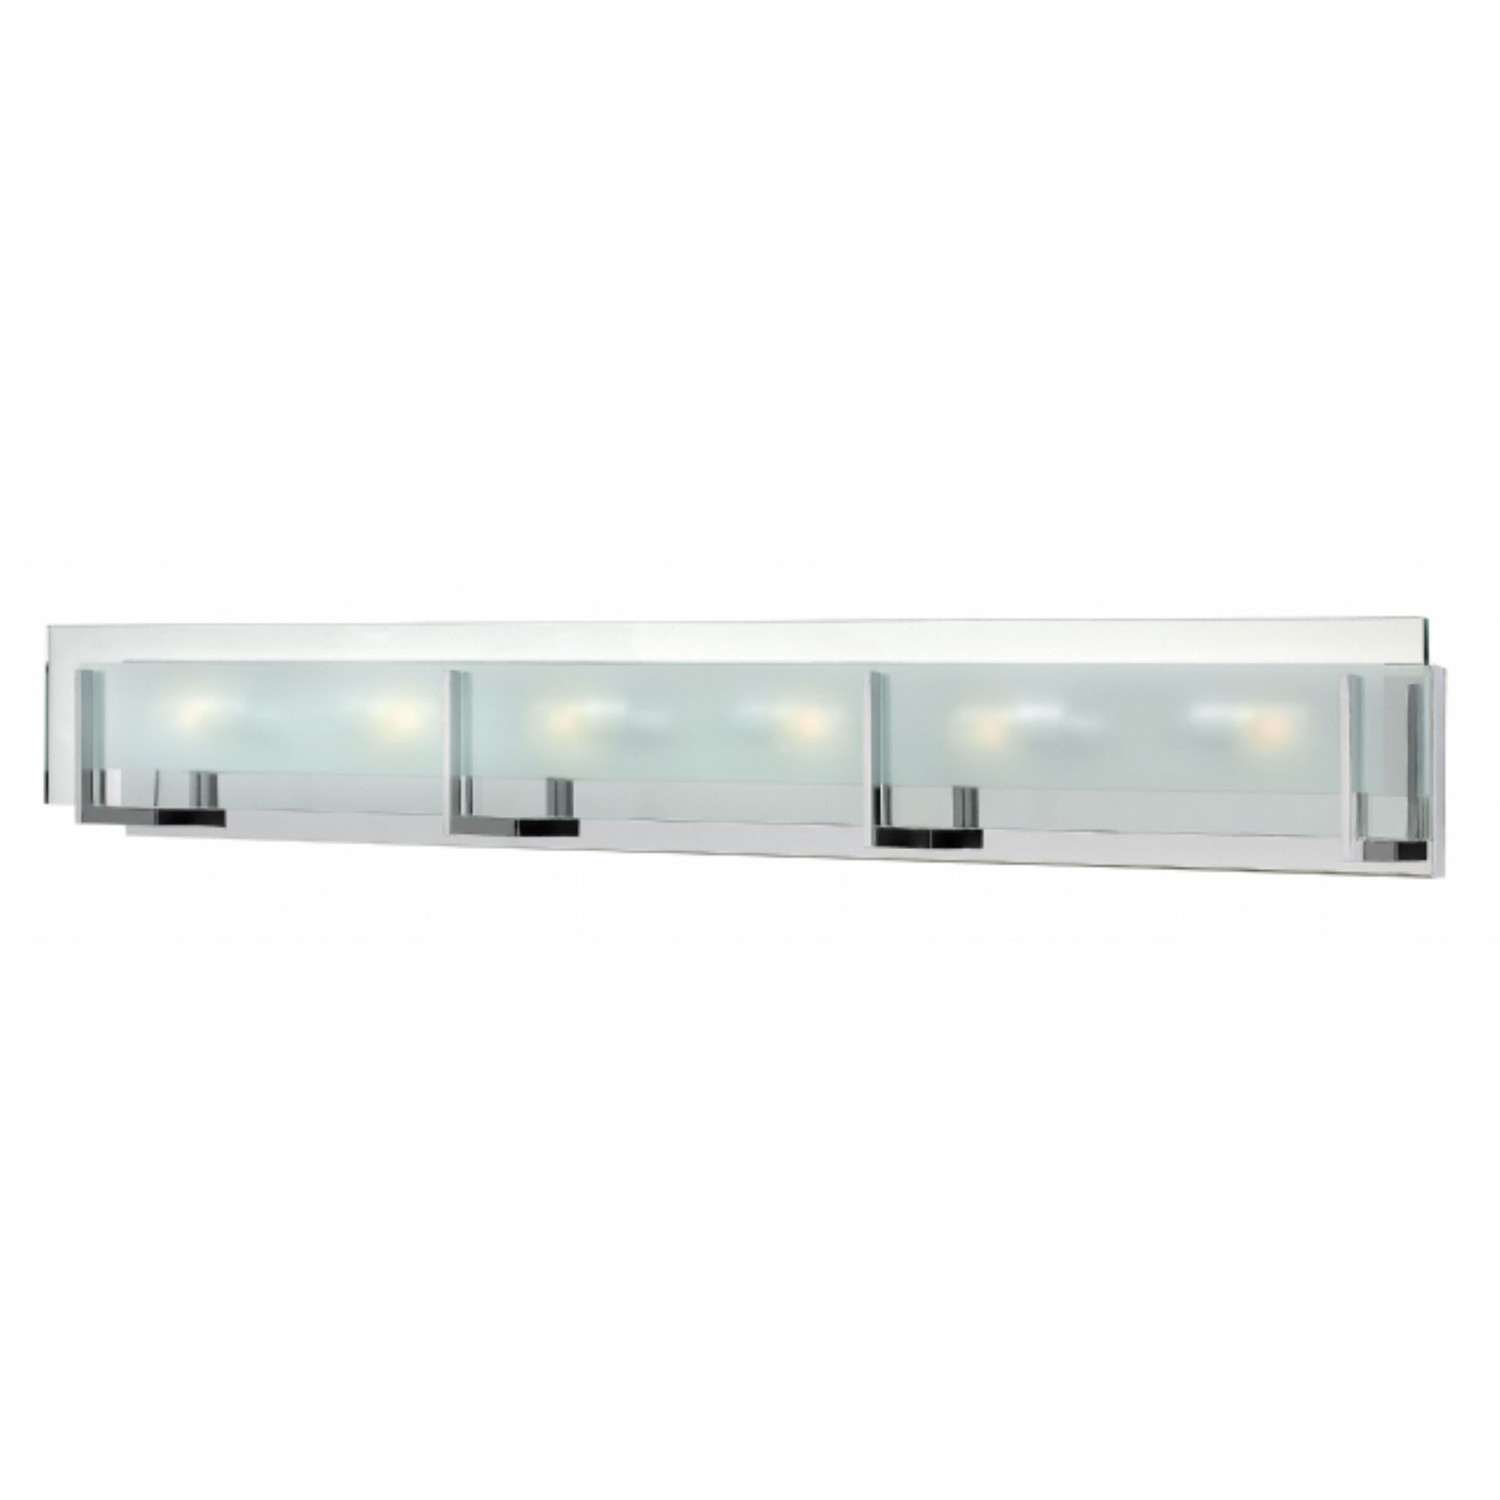 Vanity Lights Installation : Fill Your Bathroom Vanity with Dramatic Lights by Installing 6 Light Vanity Fixture HomesFeed